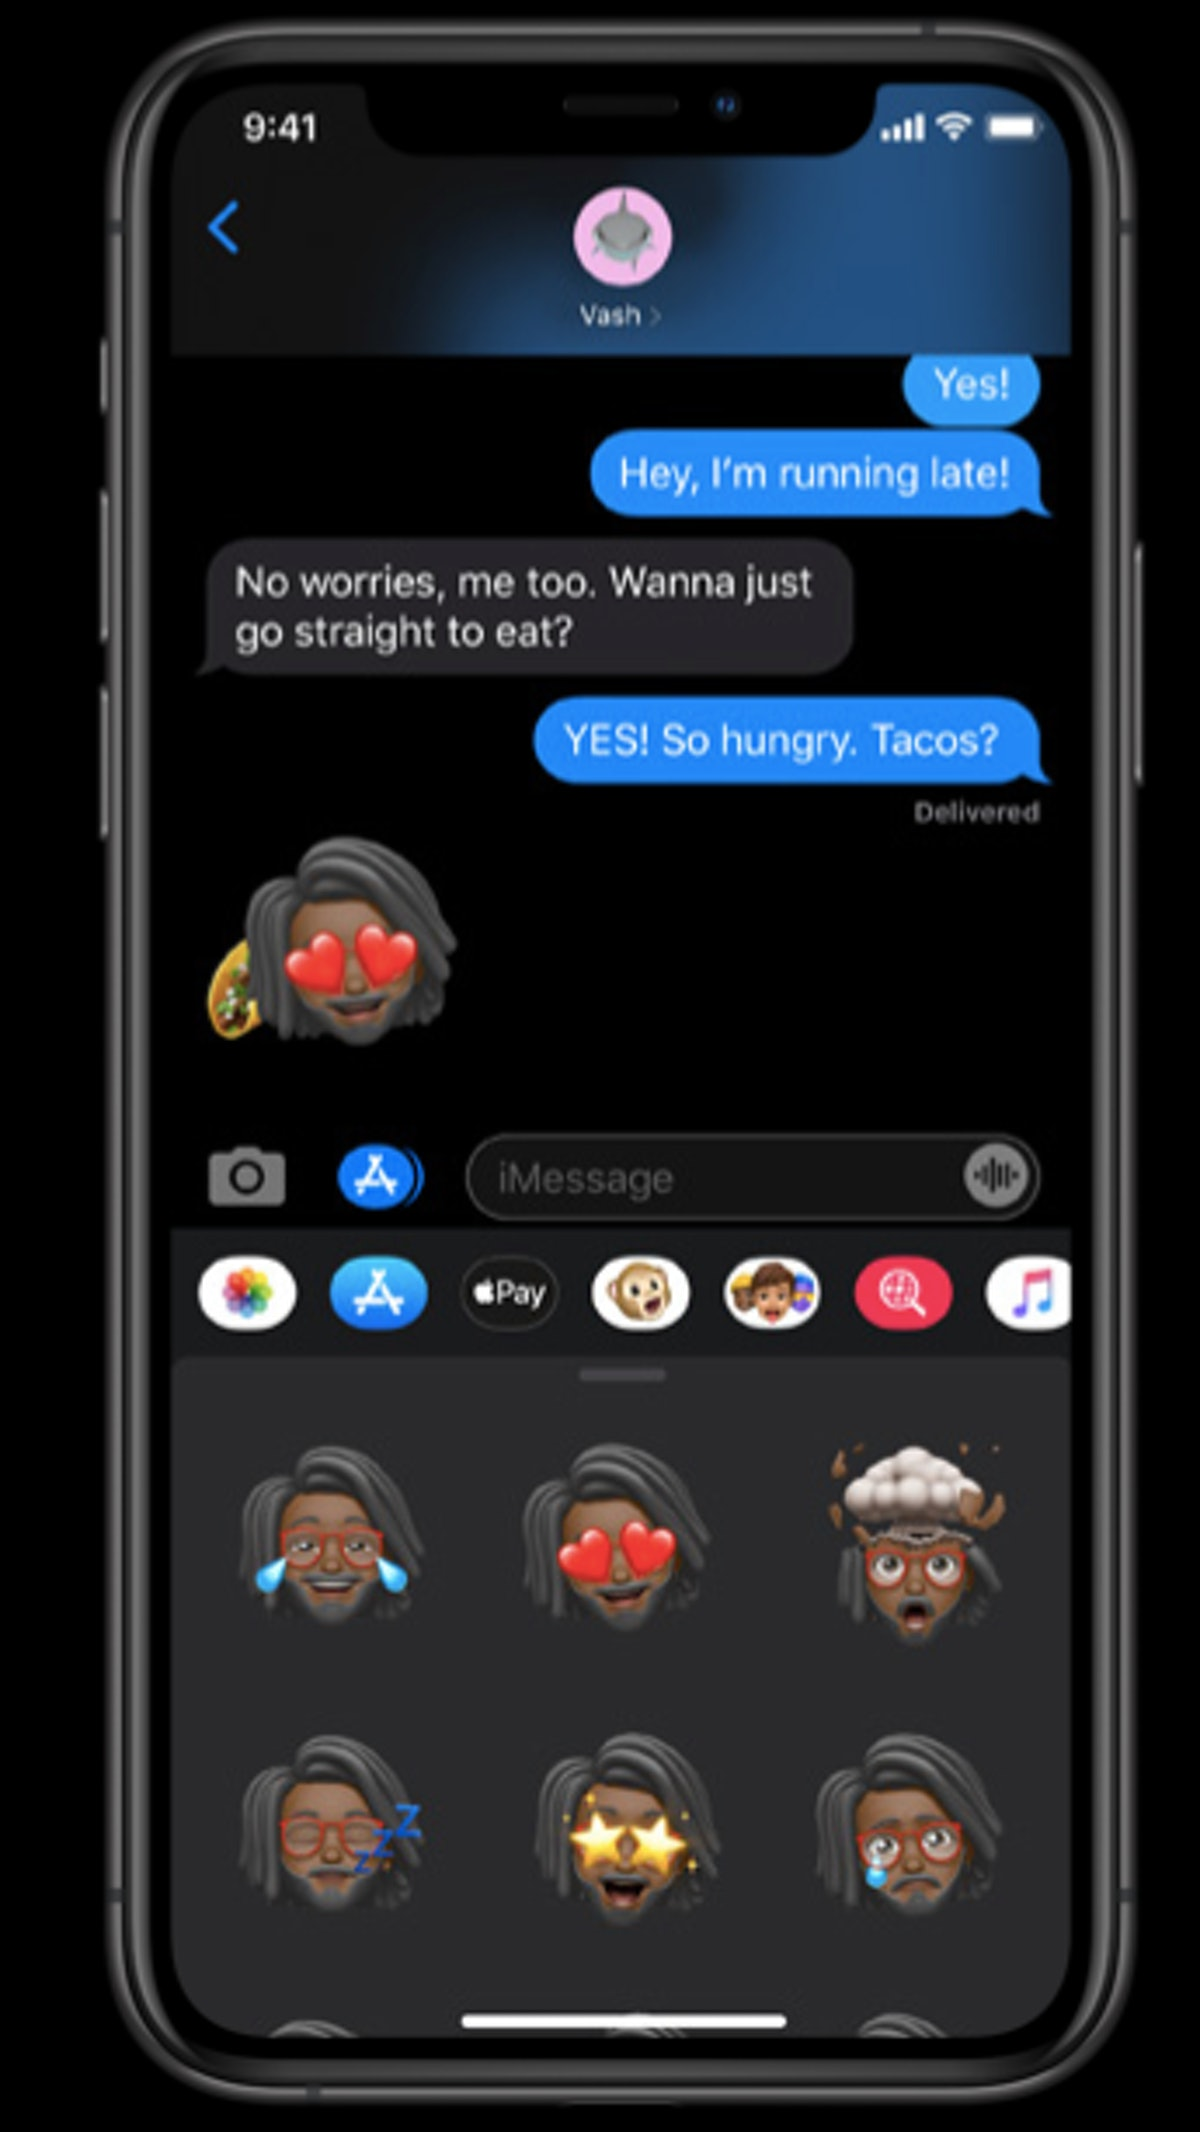 Here's how to use Memoji Stickers on WhatsApp and Android.